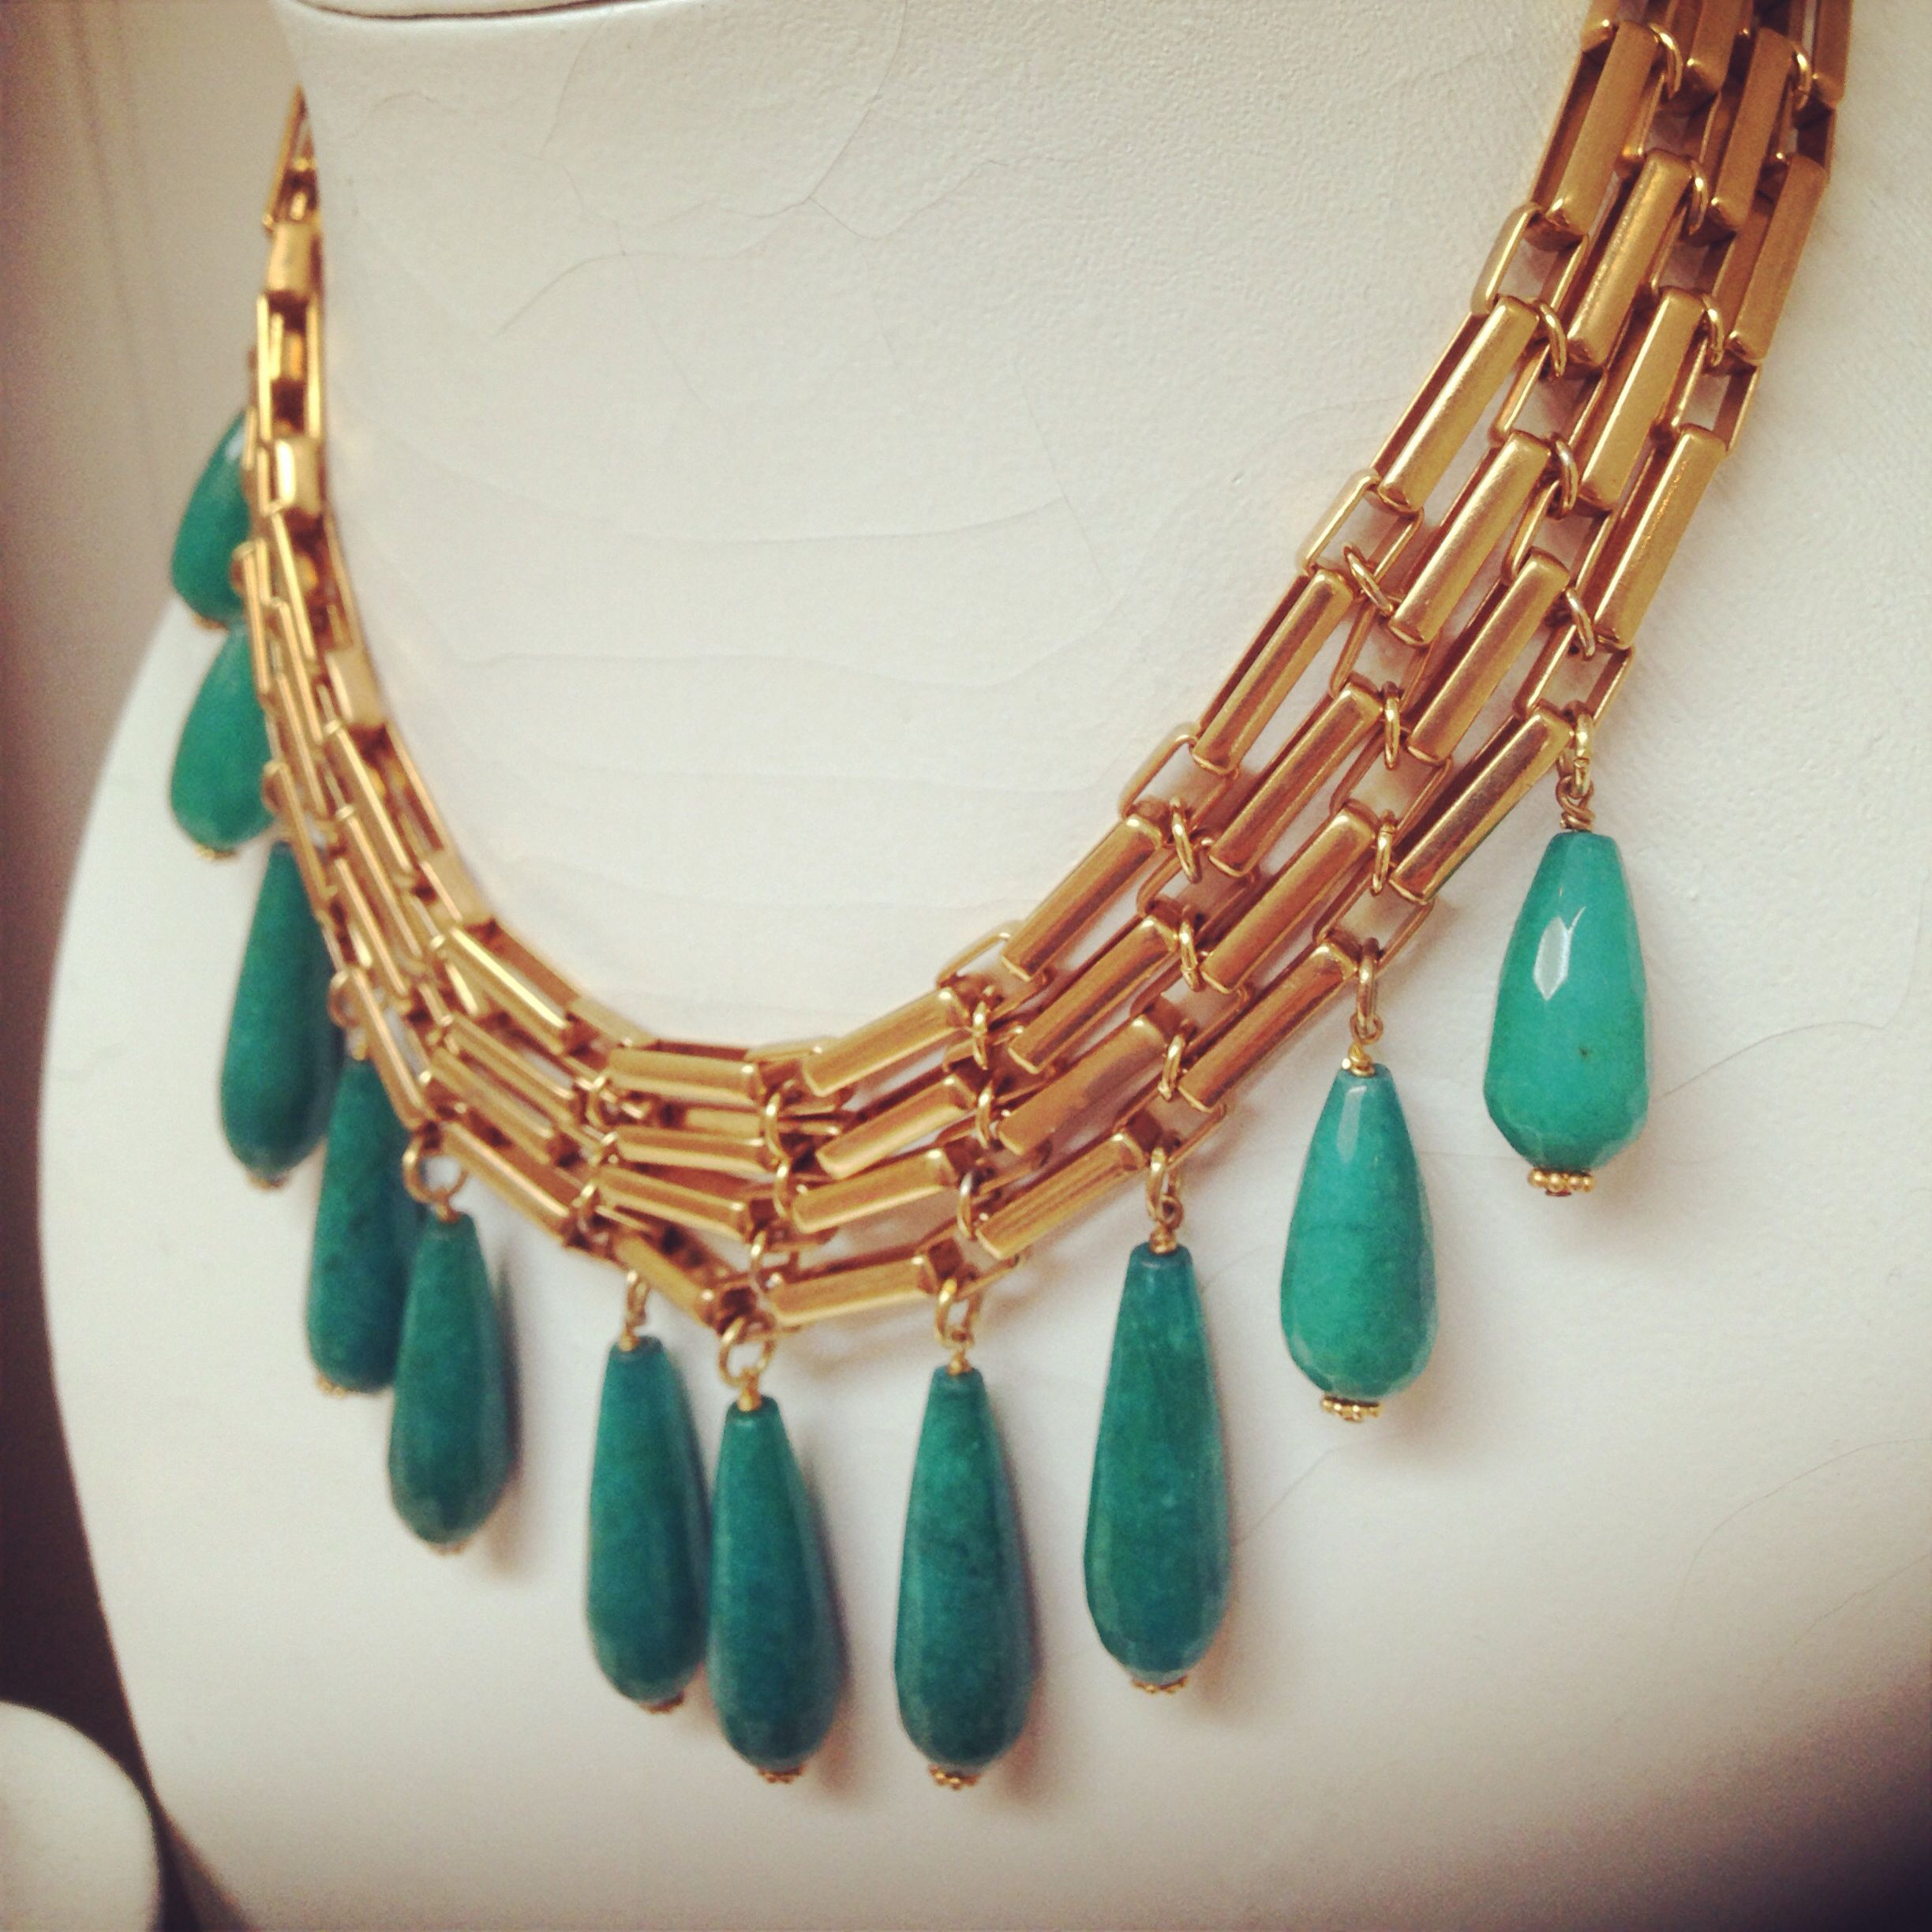 Lovely stone drop necklace in teal